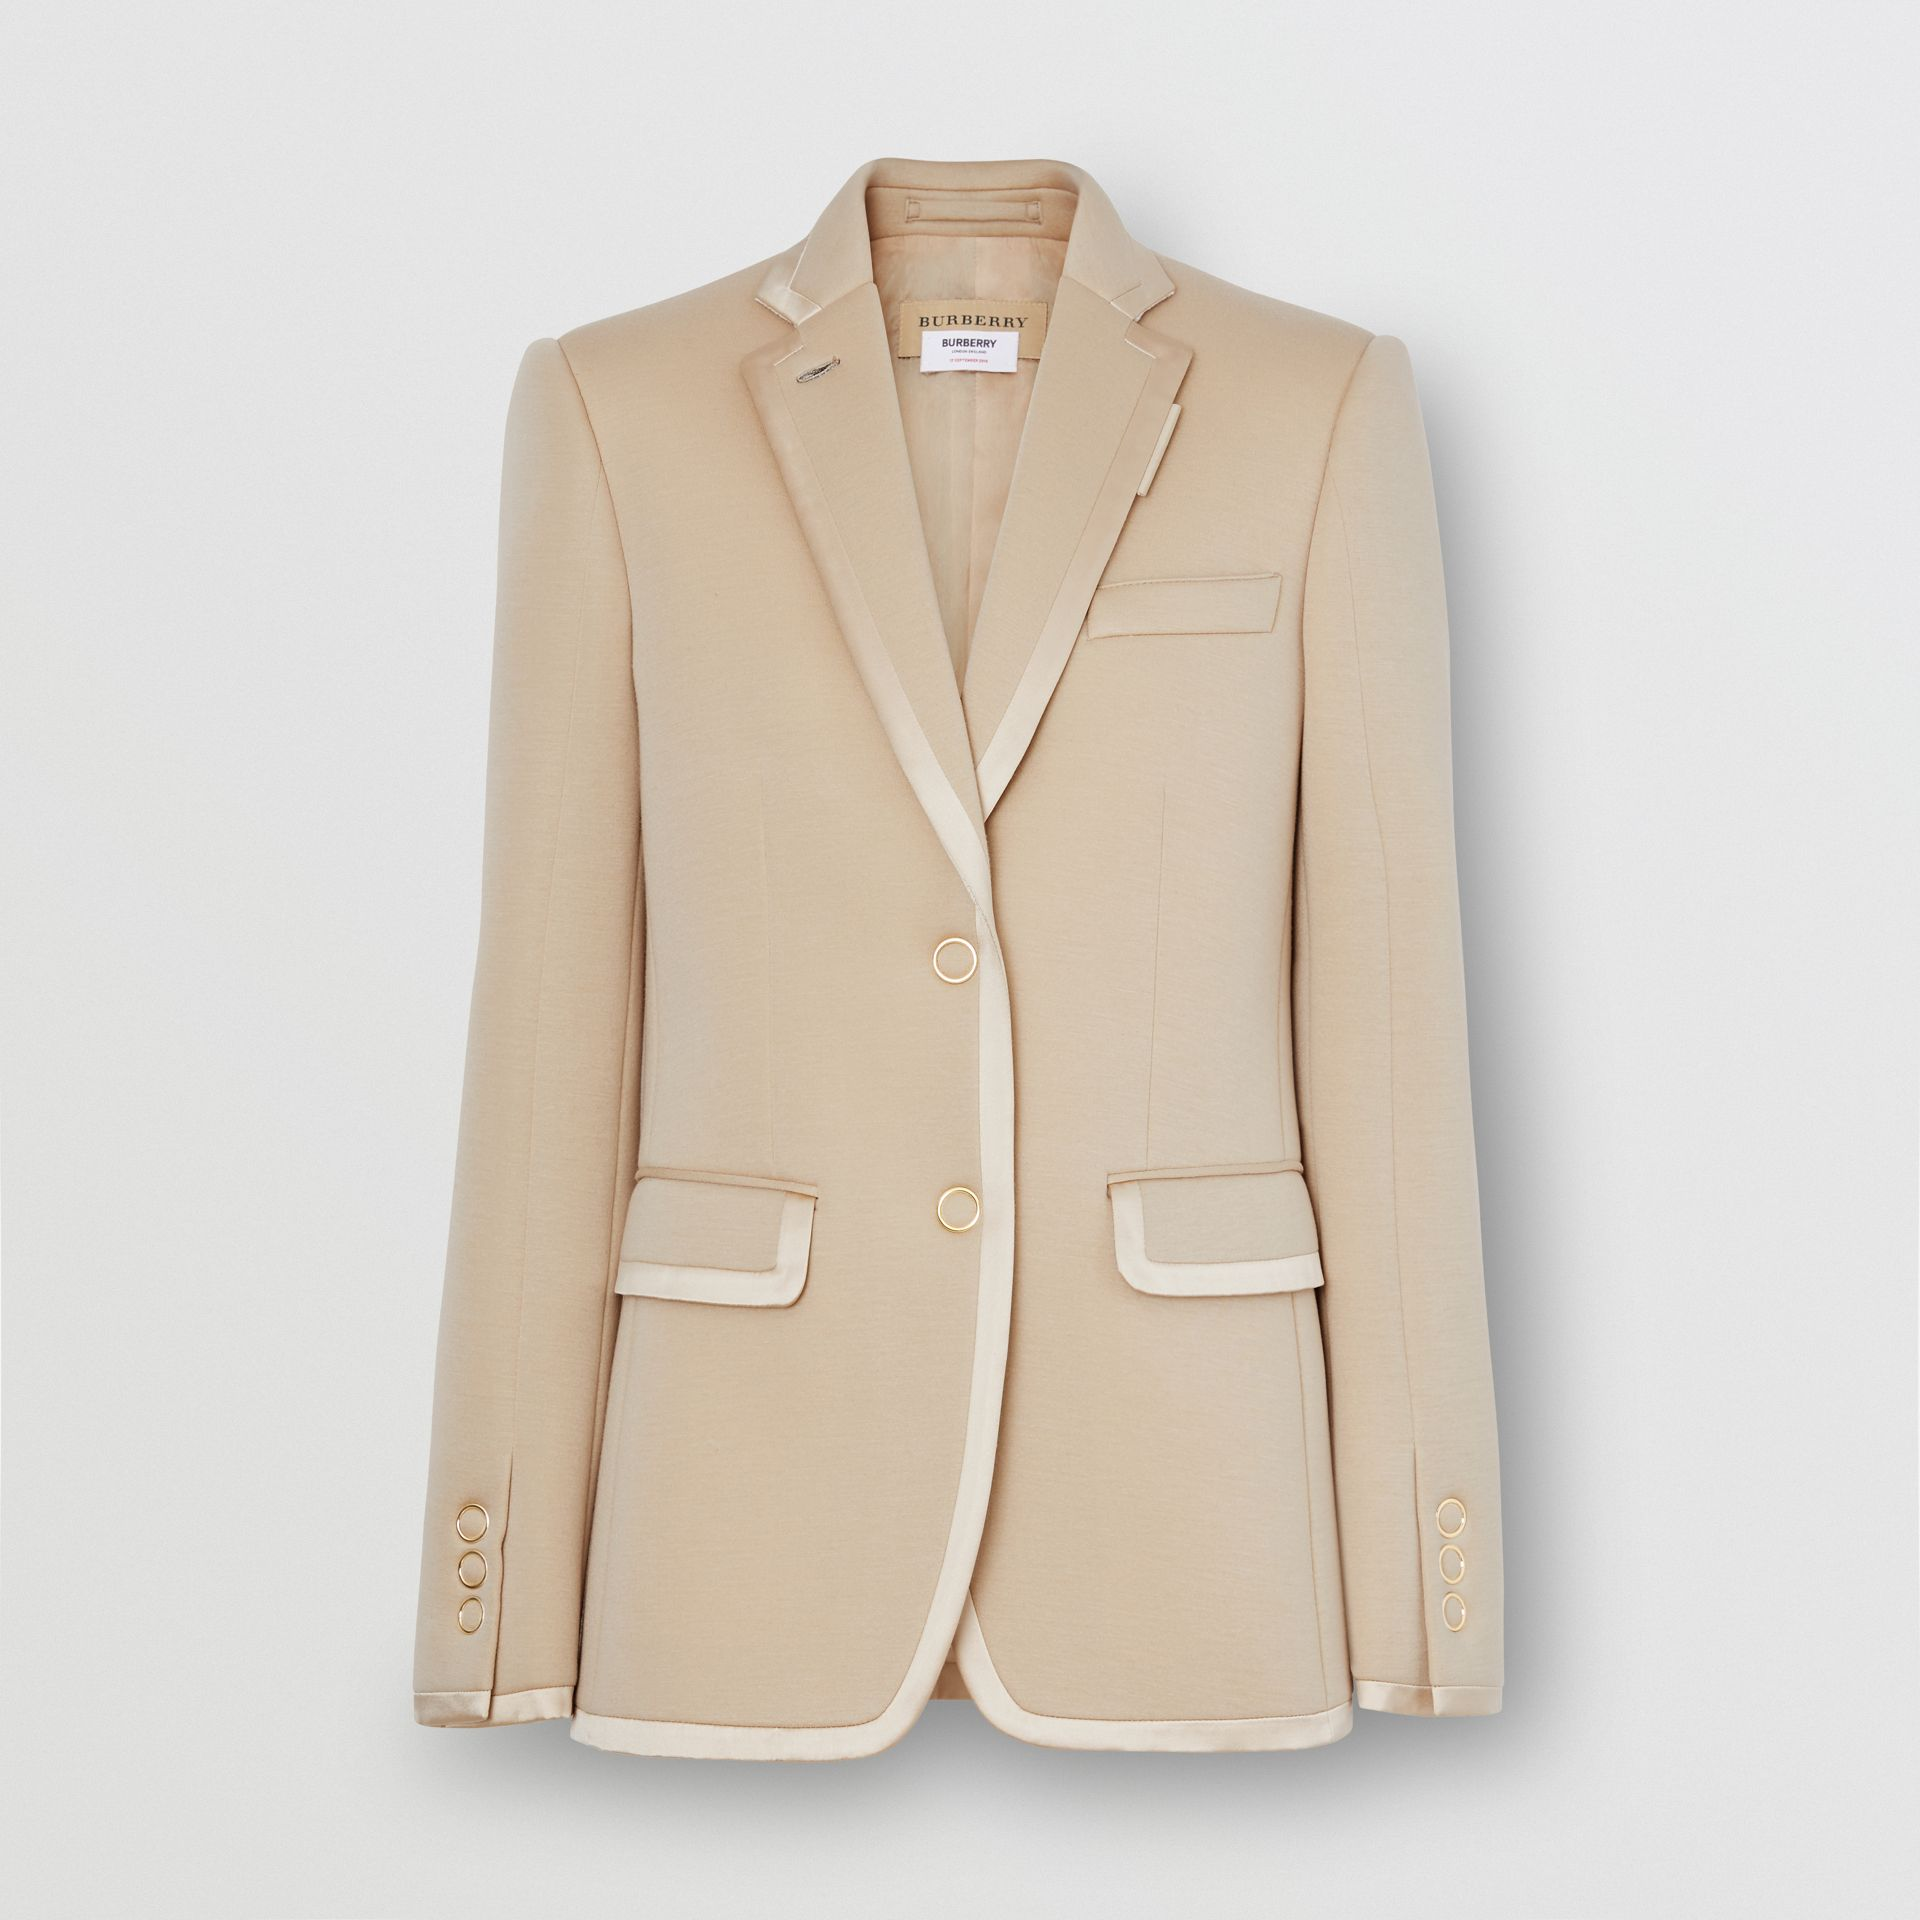 Silk Trim Neoprene Blazer in Teddy Beige - Women | Burberry Hong Kong - gallery image 3